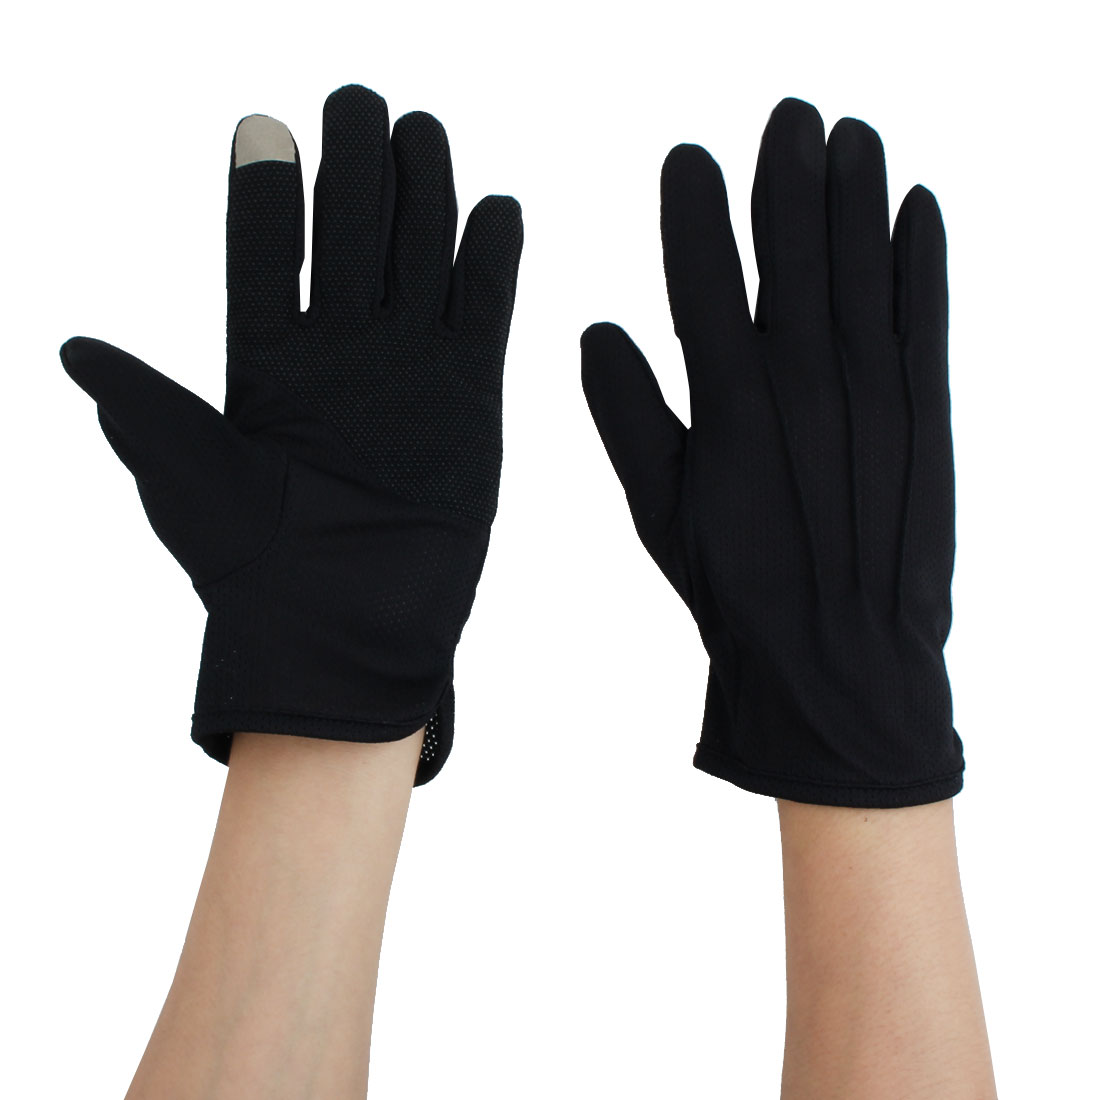 Man Summer Motorcycle Riding Driving Sun Resistant Gloves Protector Black #2